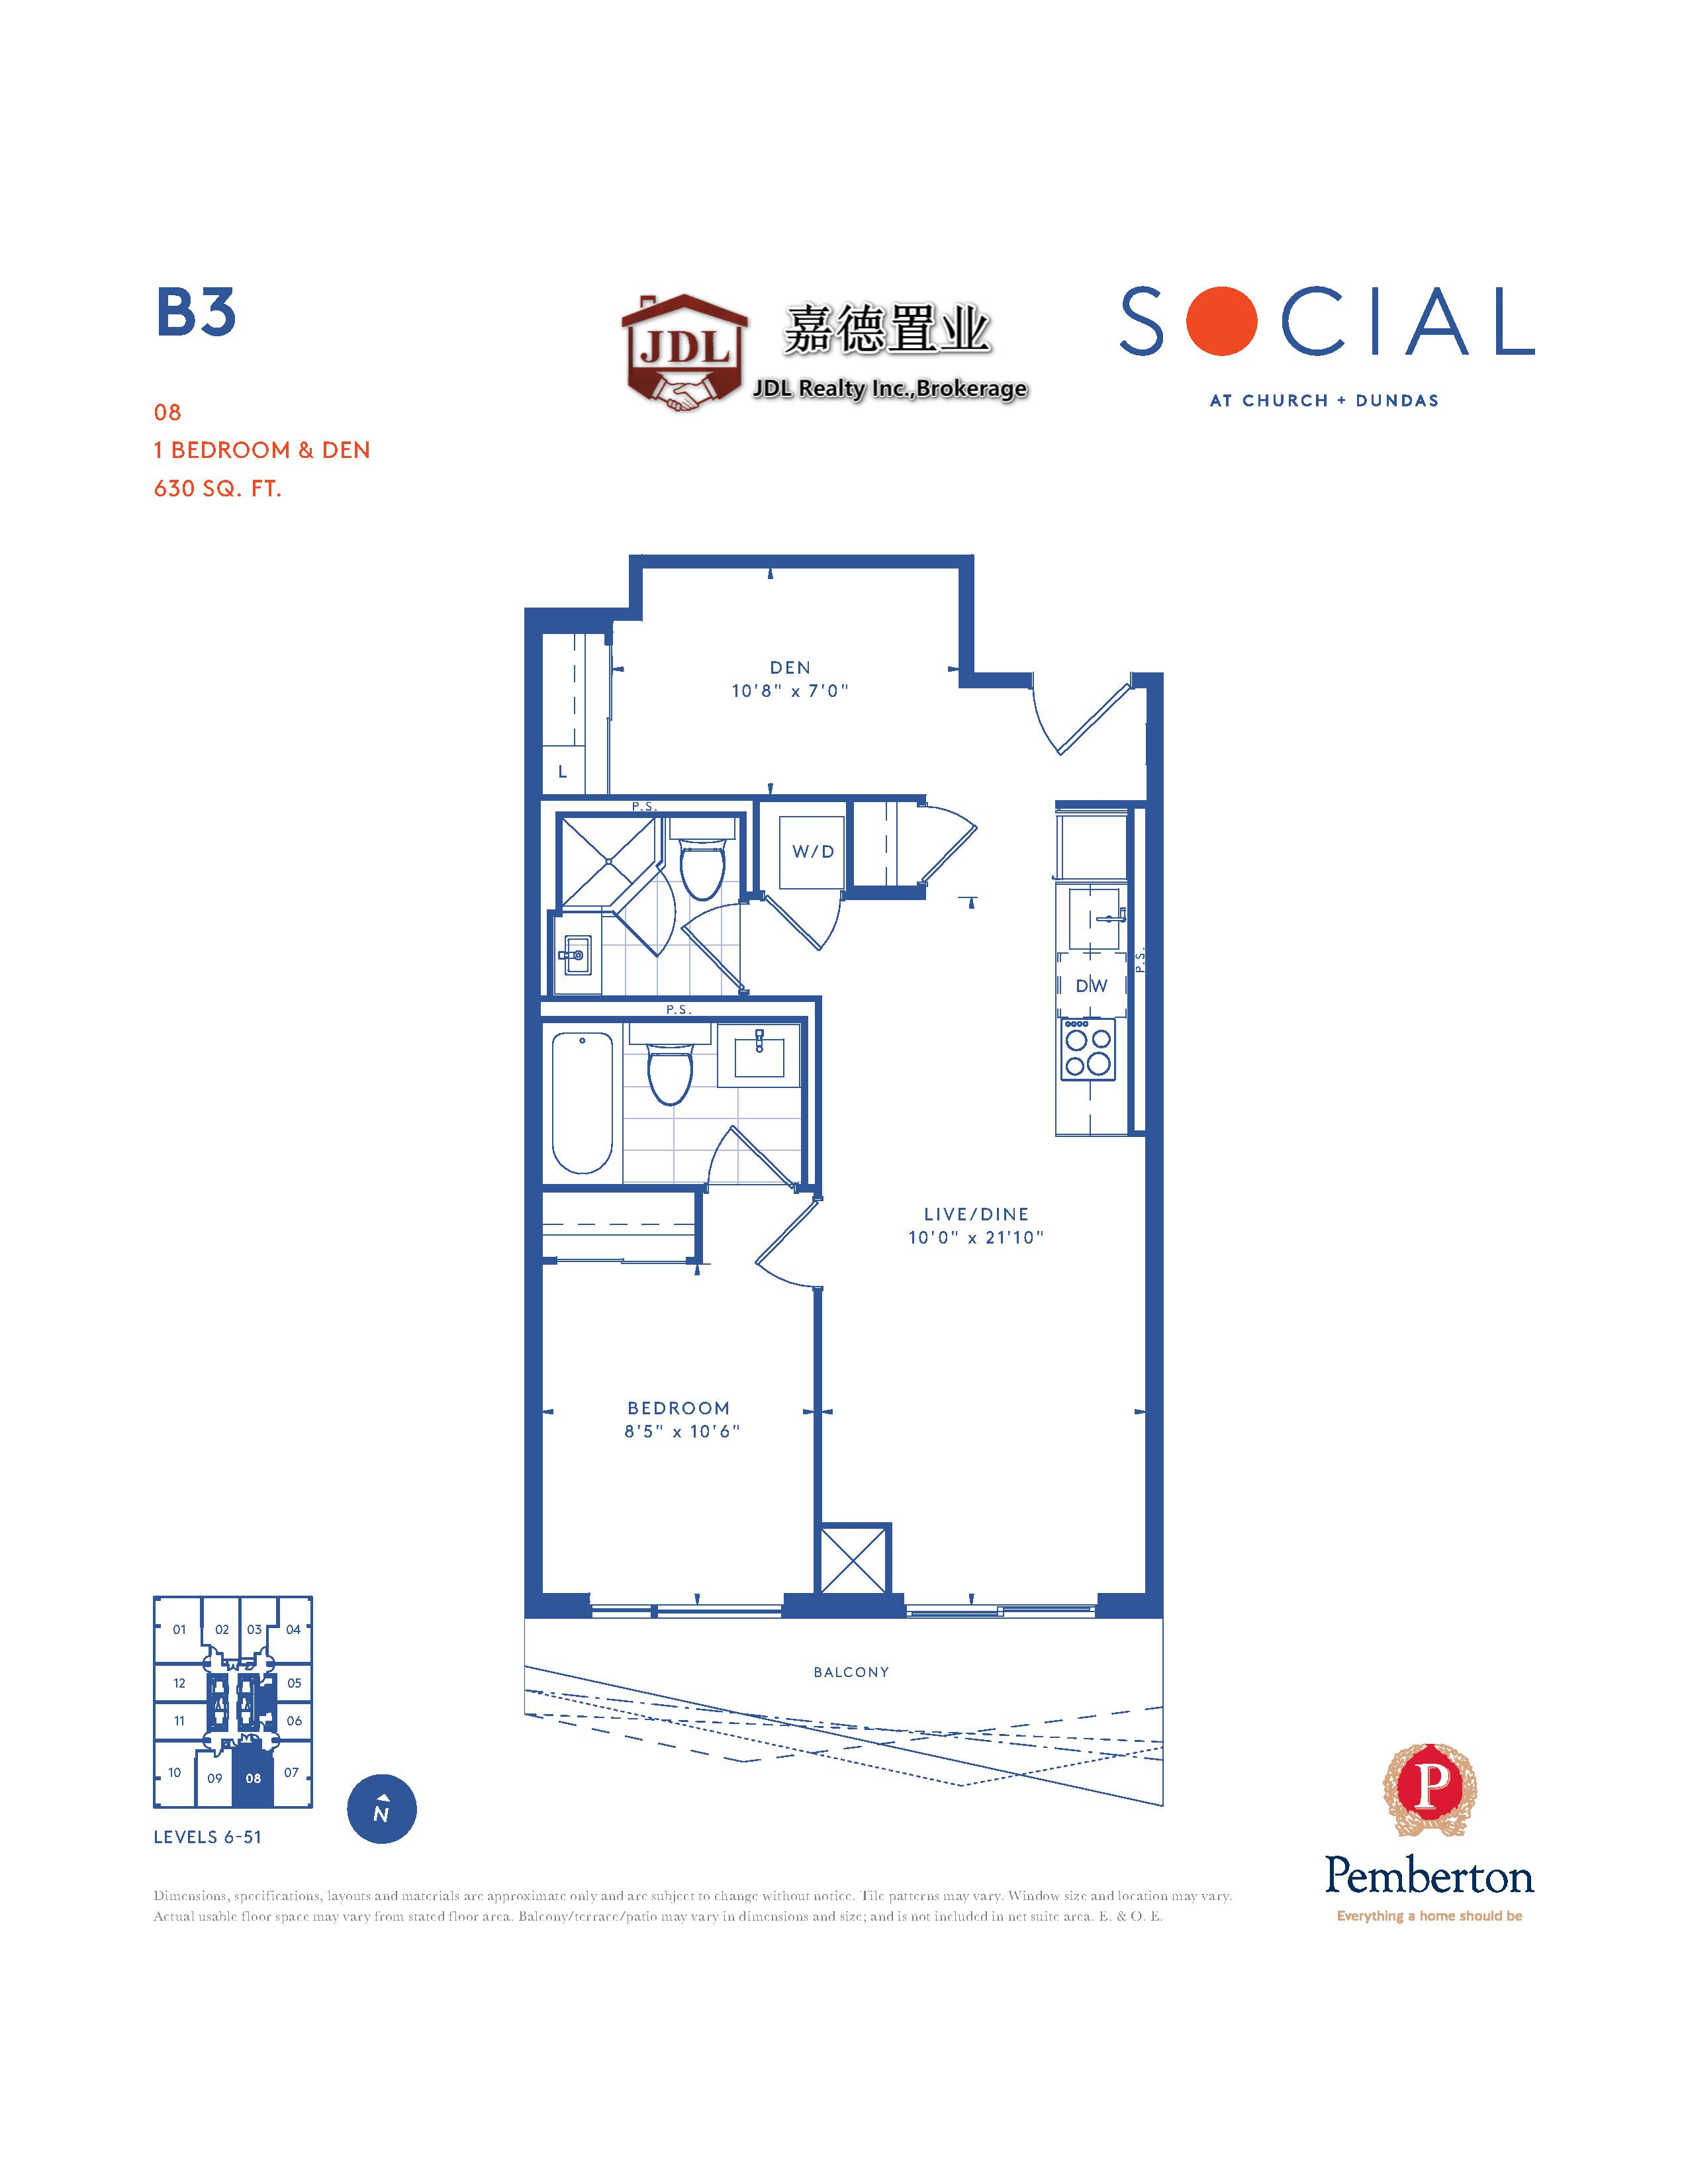 Social Tower floor plan 1 10